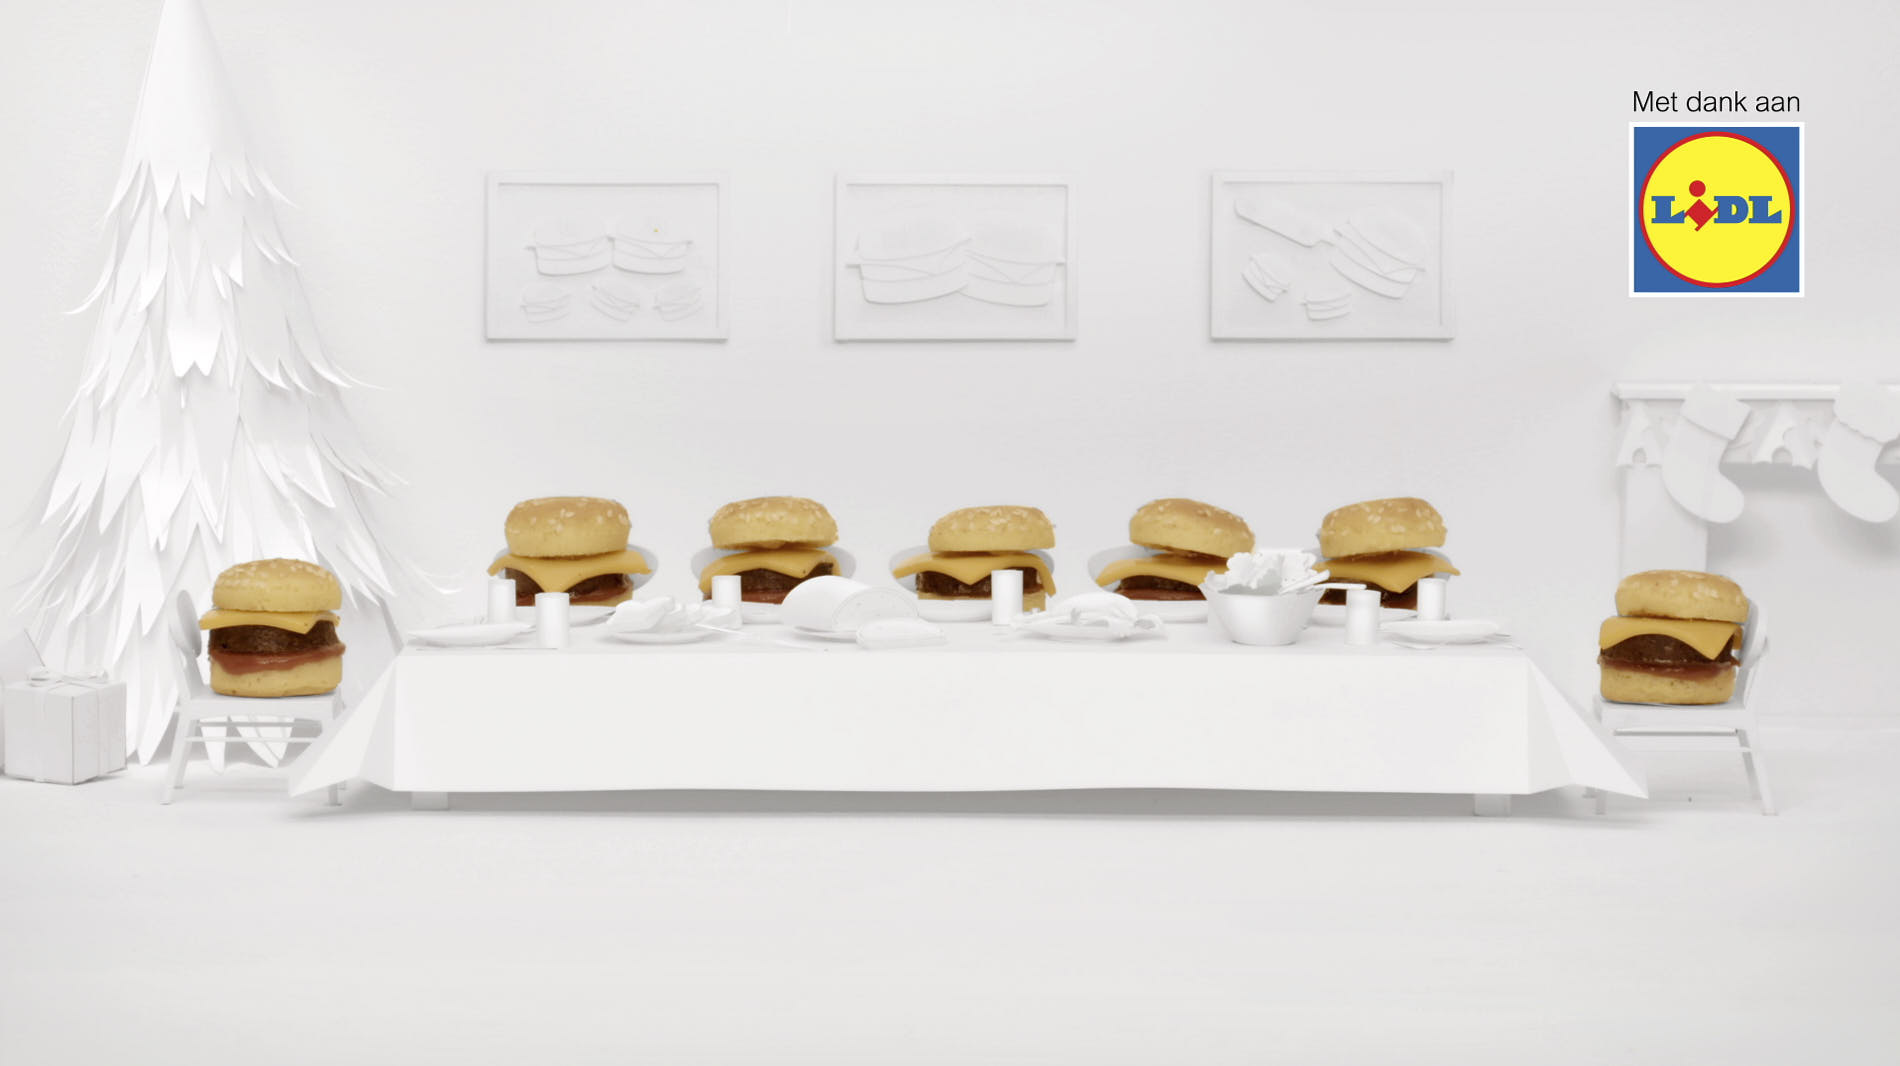 white paper miniature setting of a dinner table and mini-hamburgers sitting on chairs